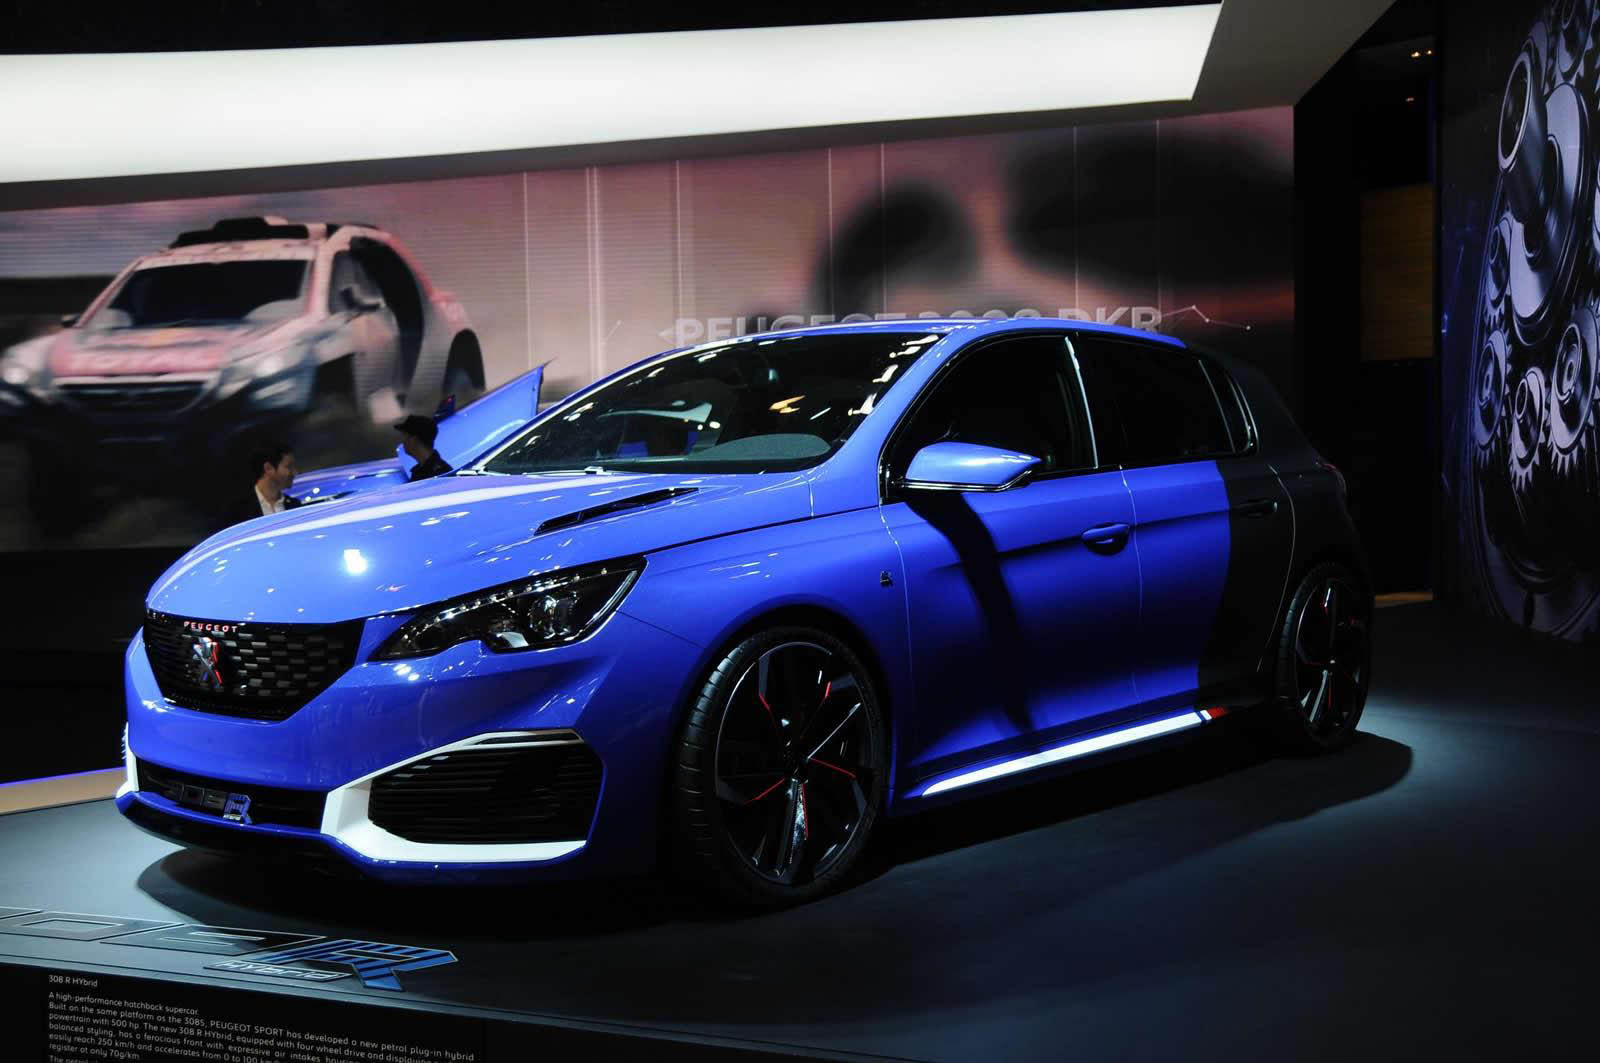 peugeot 308 r hybrid aparece em shanghai carzoom. Black Bedroom Furniture Sets. Home Design Ideas